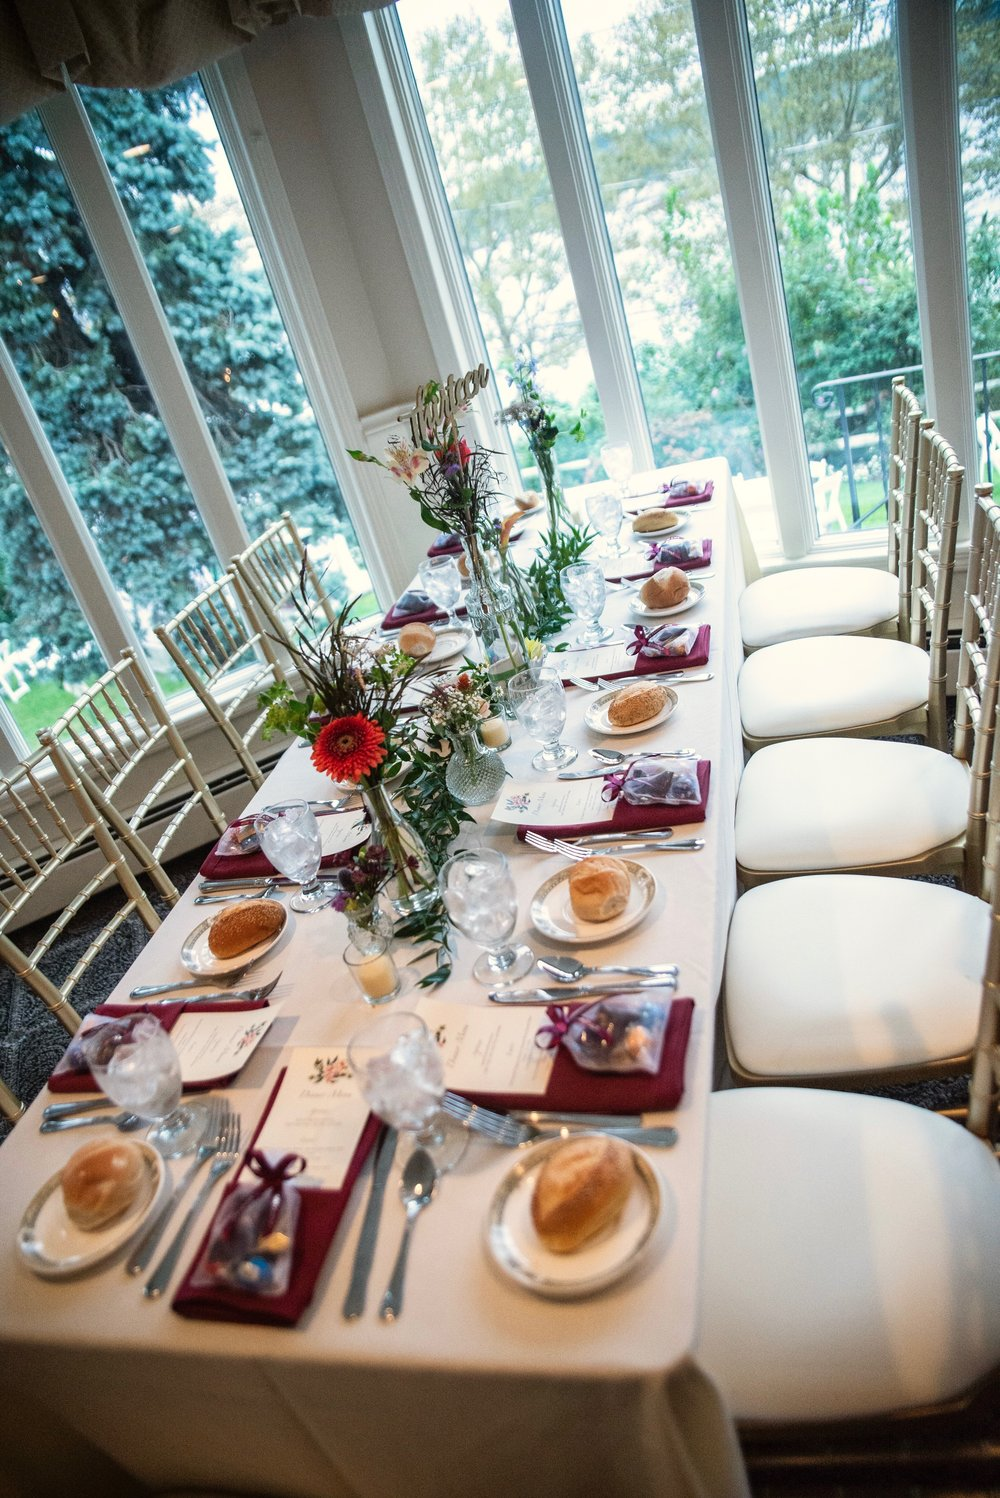 Meg & Brian wedding at Sea Cliff Manor by Unveiled-Weddings.com #finally